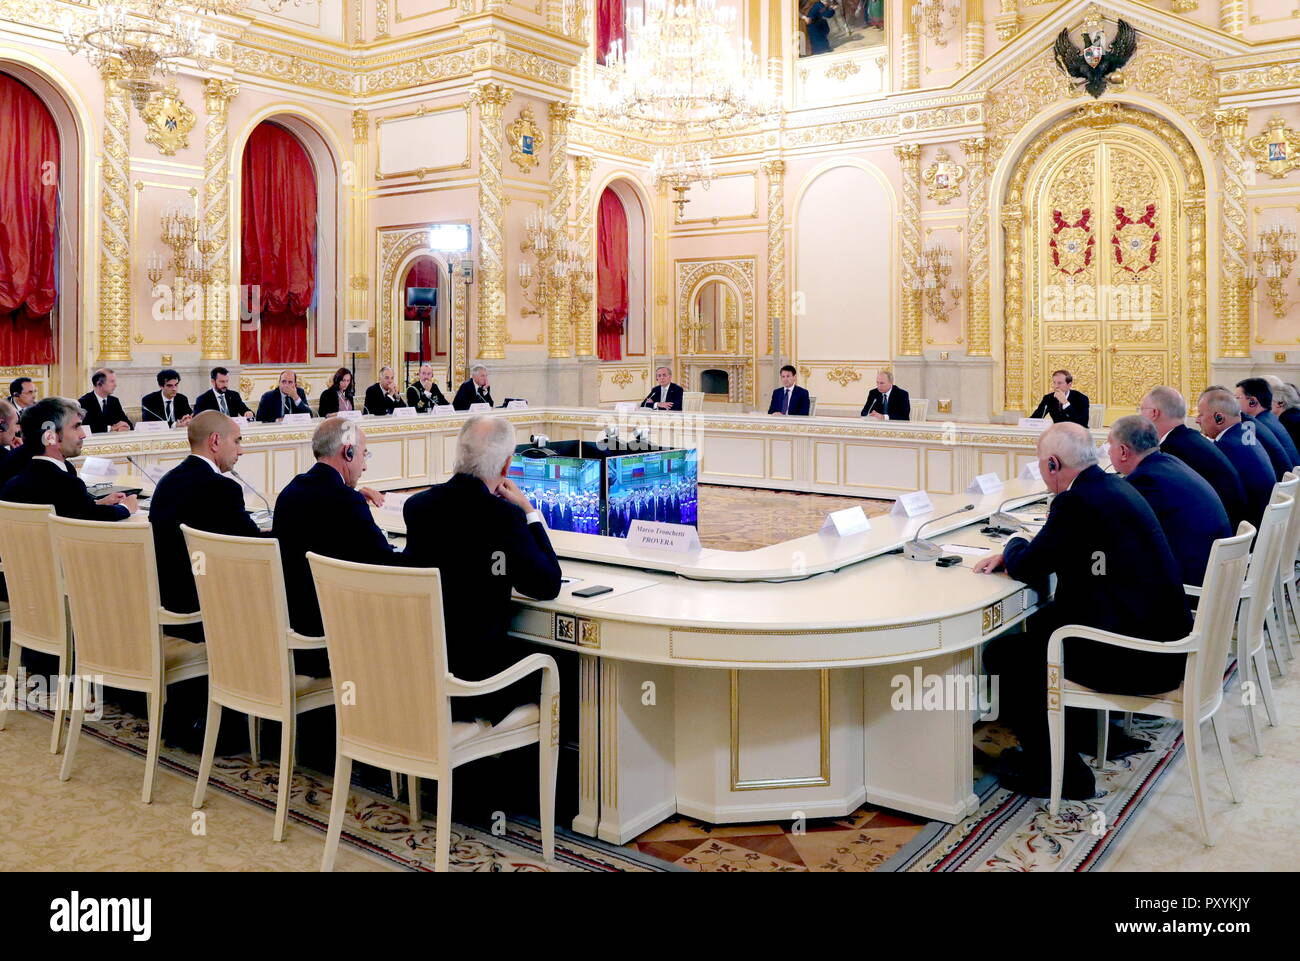 Moscow, Russia. 24th Oct, 2018. MOSCOW, RUSSIA - OCTOBER 24, 2018: Russia's Industry and Trade Minister Denis Manturov, President Vladimir Putin, Italy's Prime Minister Giuseppe Conte, and Ambassador to Russia Pasquale Terracciano (R-L back) attend a video conference to launch a REM (Russian Electric Motors) plant as part of a meeting with Italian businessmen at the Moscow Kremlin. Mikhail Klimentyev/Russian Presidential Press and Information Office/TASS Credit: ITAR-TASS News Agency/Alamy Live News - Stock Image